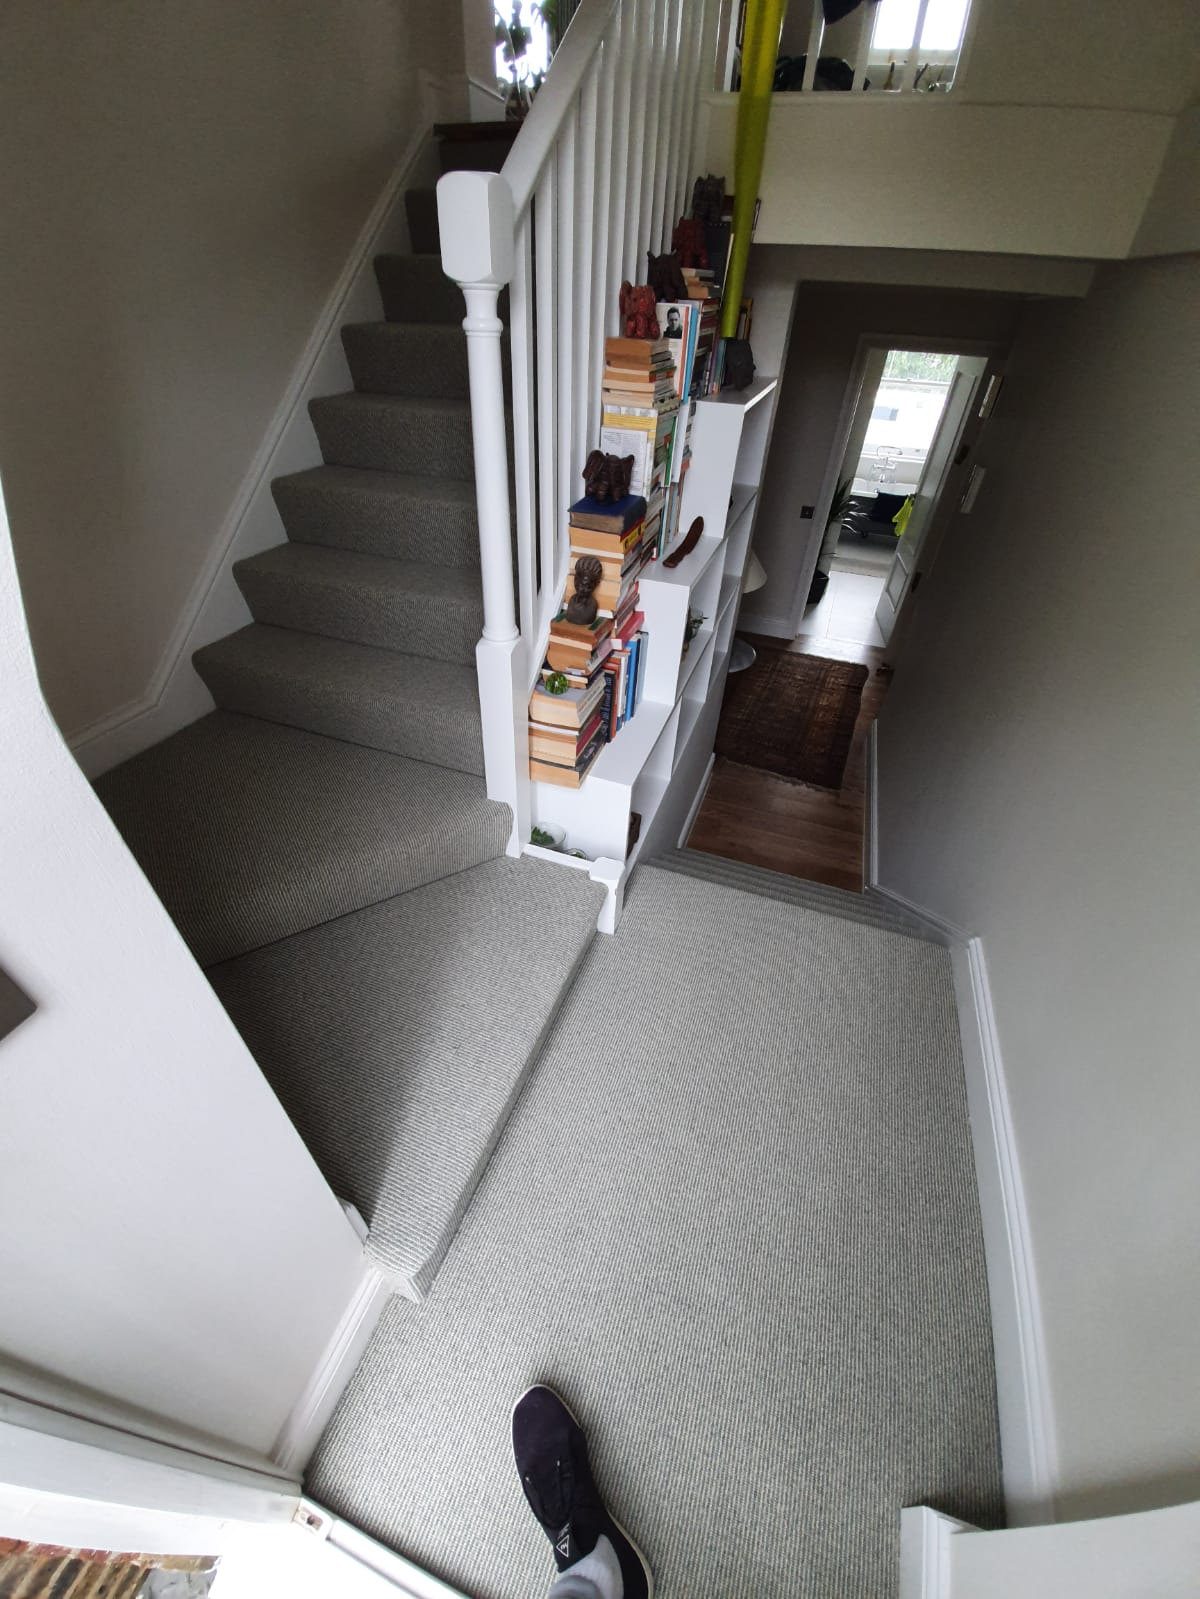 Westex Carpets Natural Loop Boucle Shingle Carpet in Belgravia 2